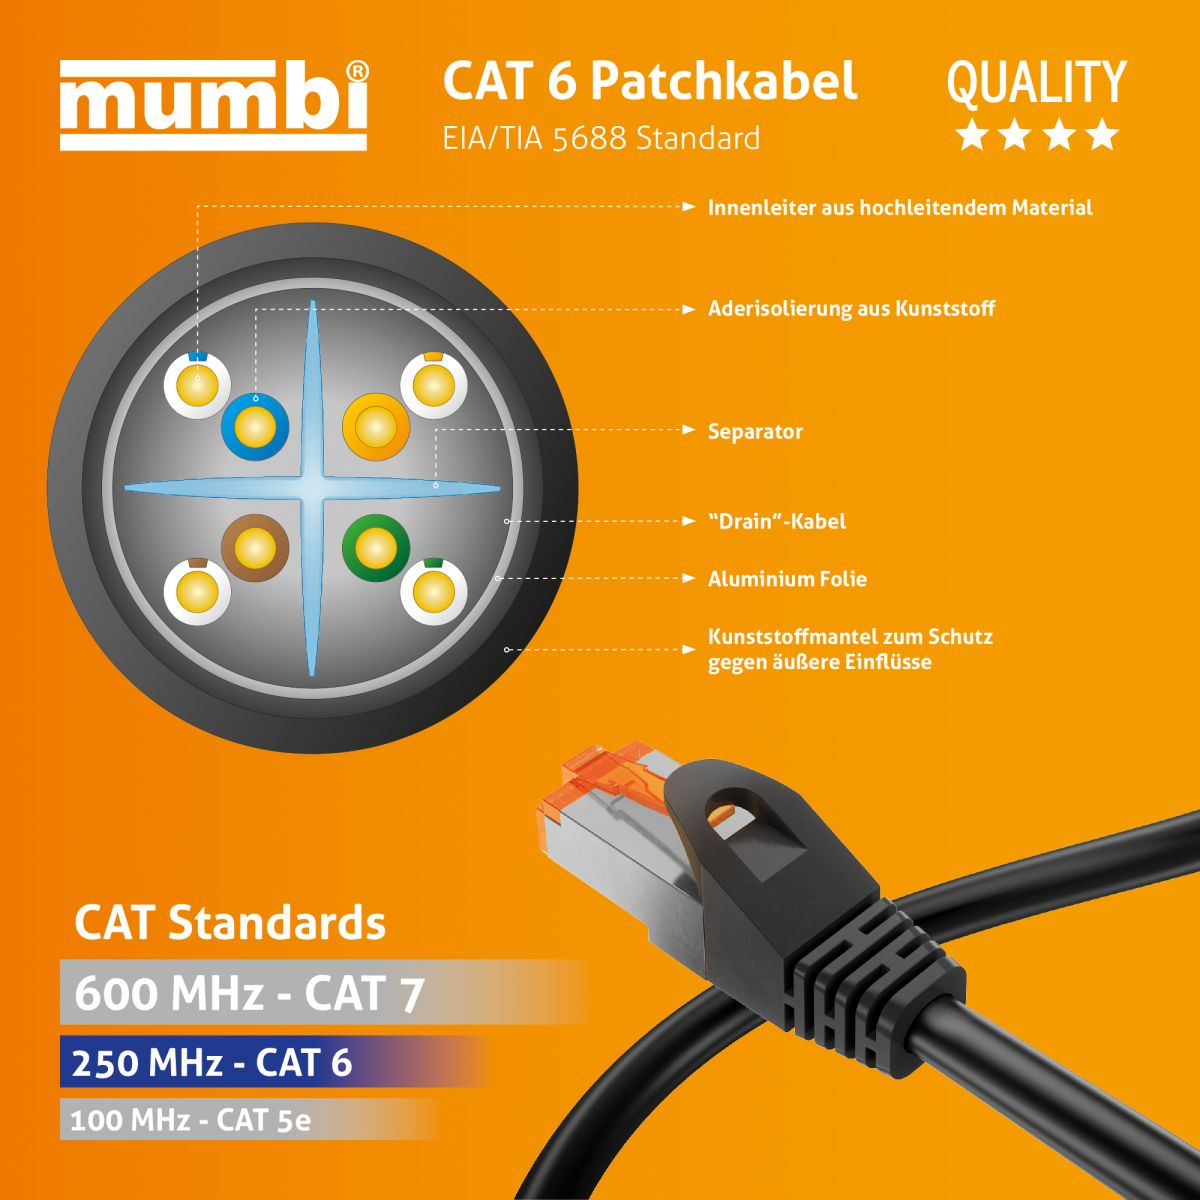 mumbi 15m cat6 netzwerkkabel patchkabel ethernet kabel lan dsl schwarz 4251077249786 ebay. Black Bedroom Furniture Sets. Home Design Ideas